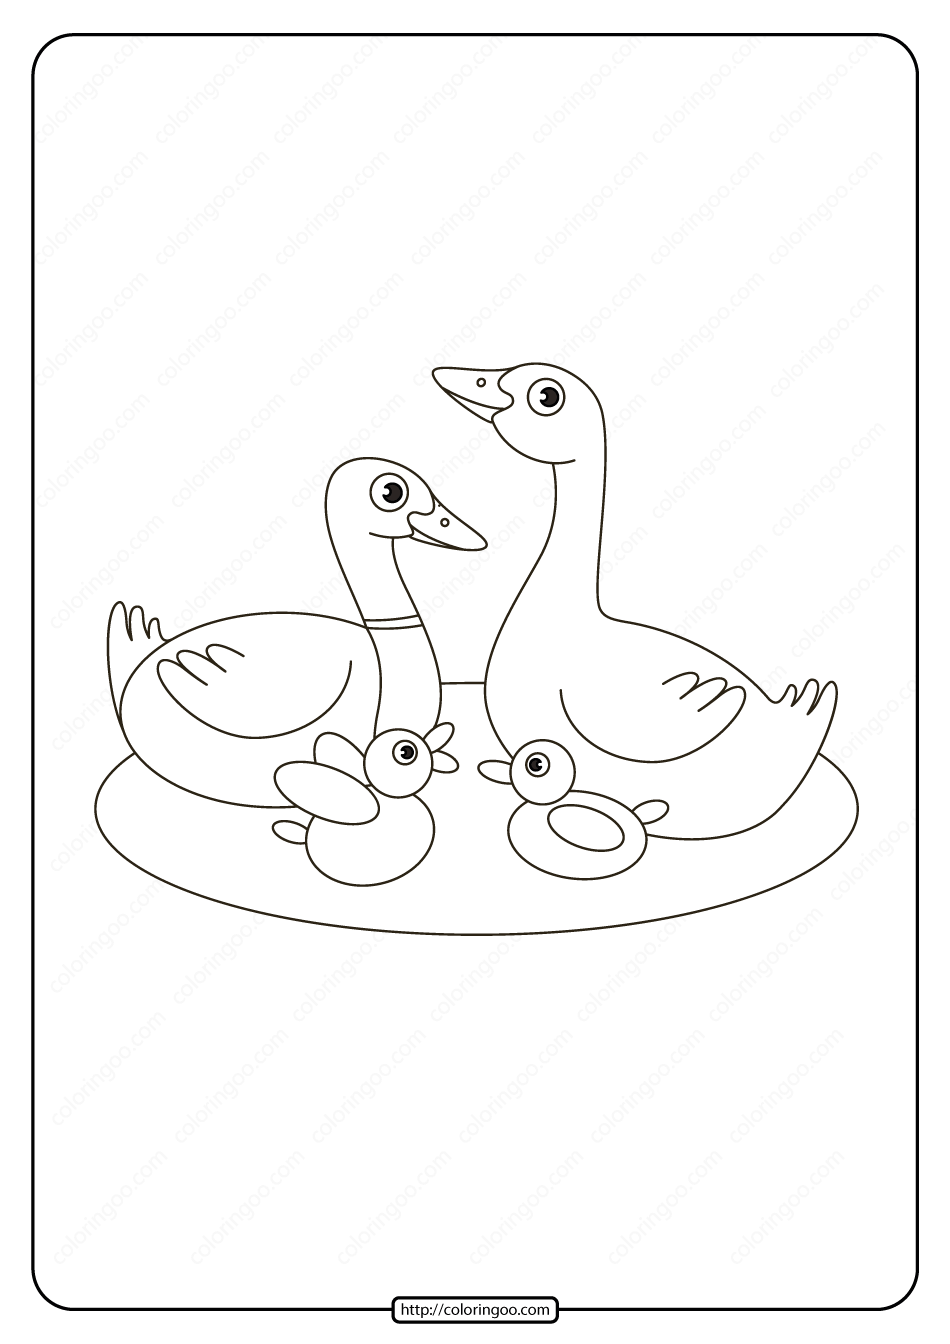 Printable Duck Family In The Lake Coloring Page Family Coloring Pages Family Coloring Coloring Pages